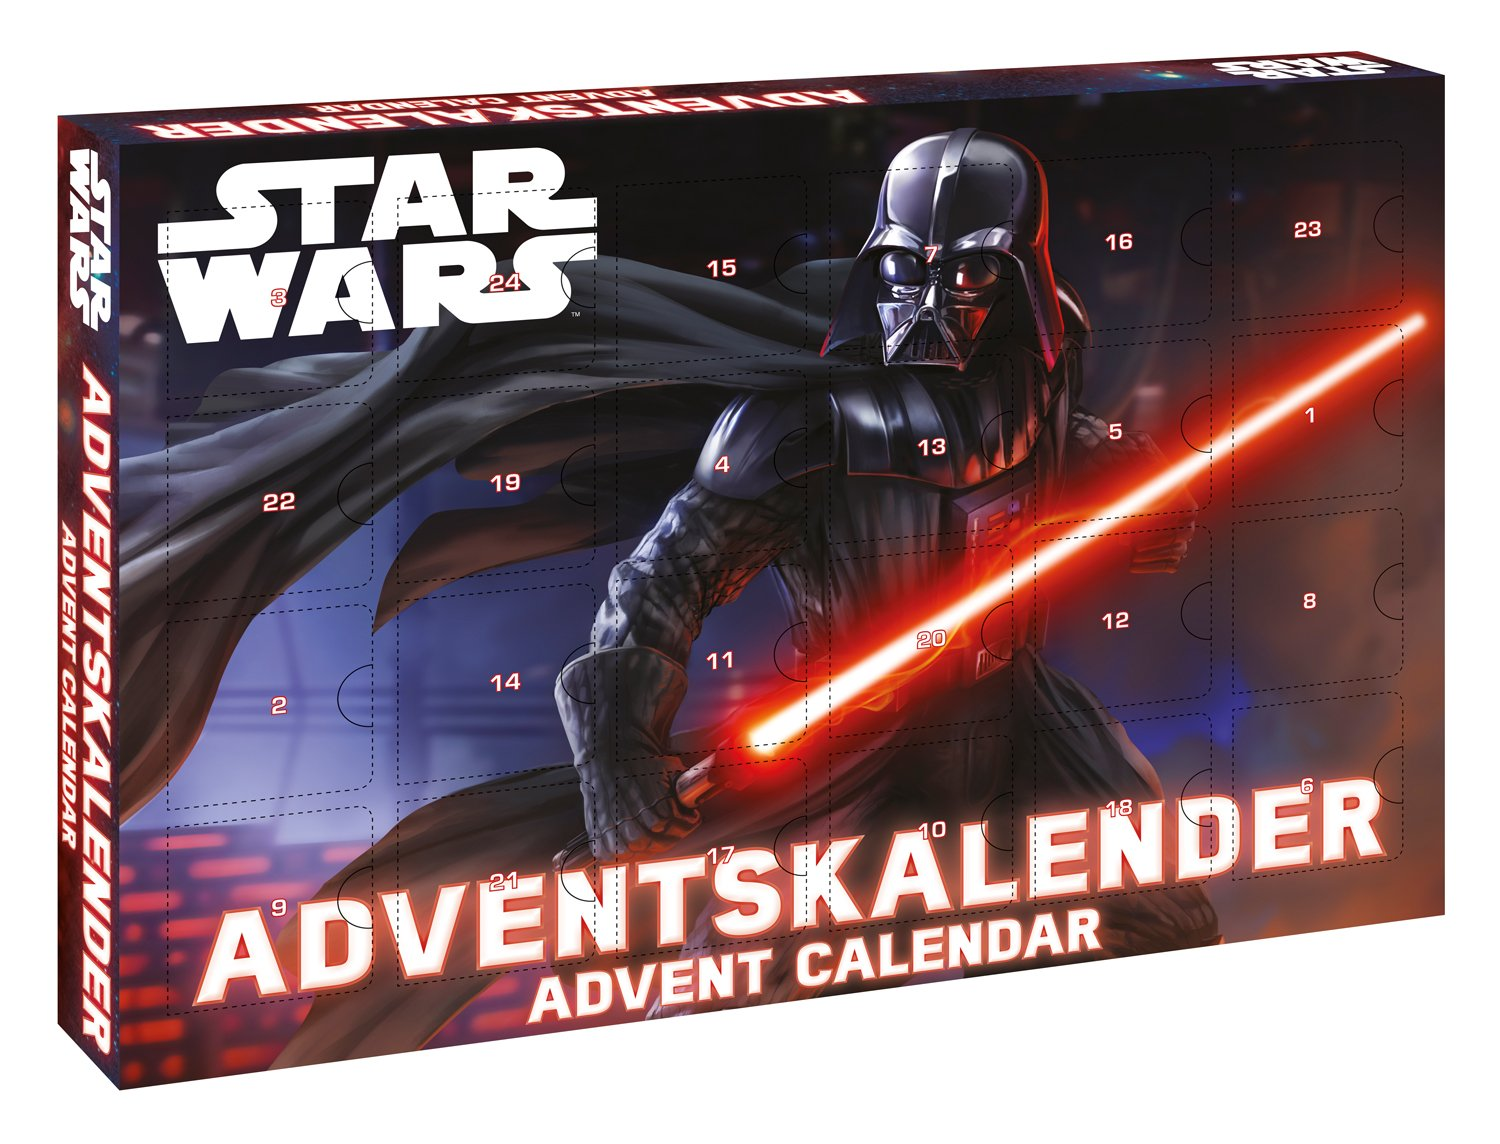 Craze 52106 - Adventskalender Star Wars Craze_52106